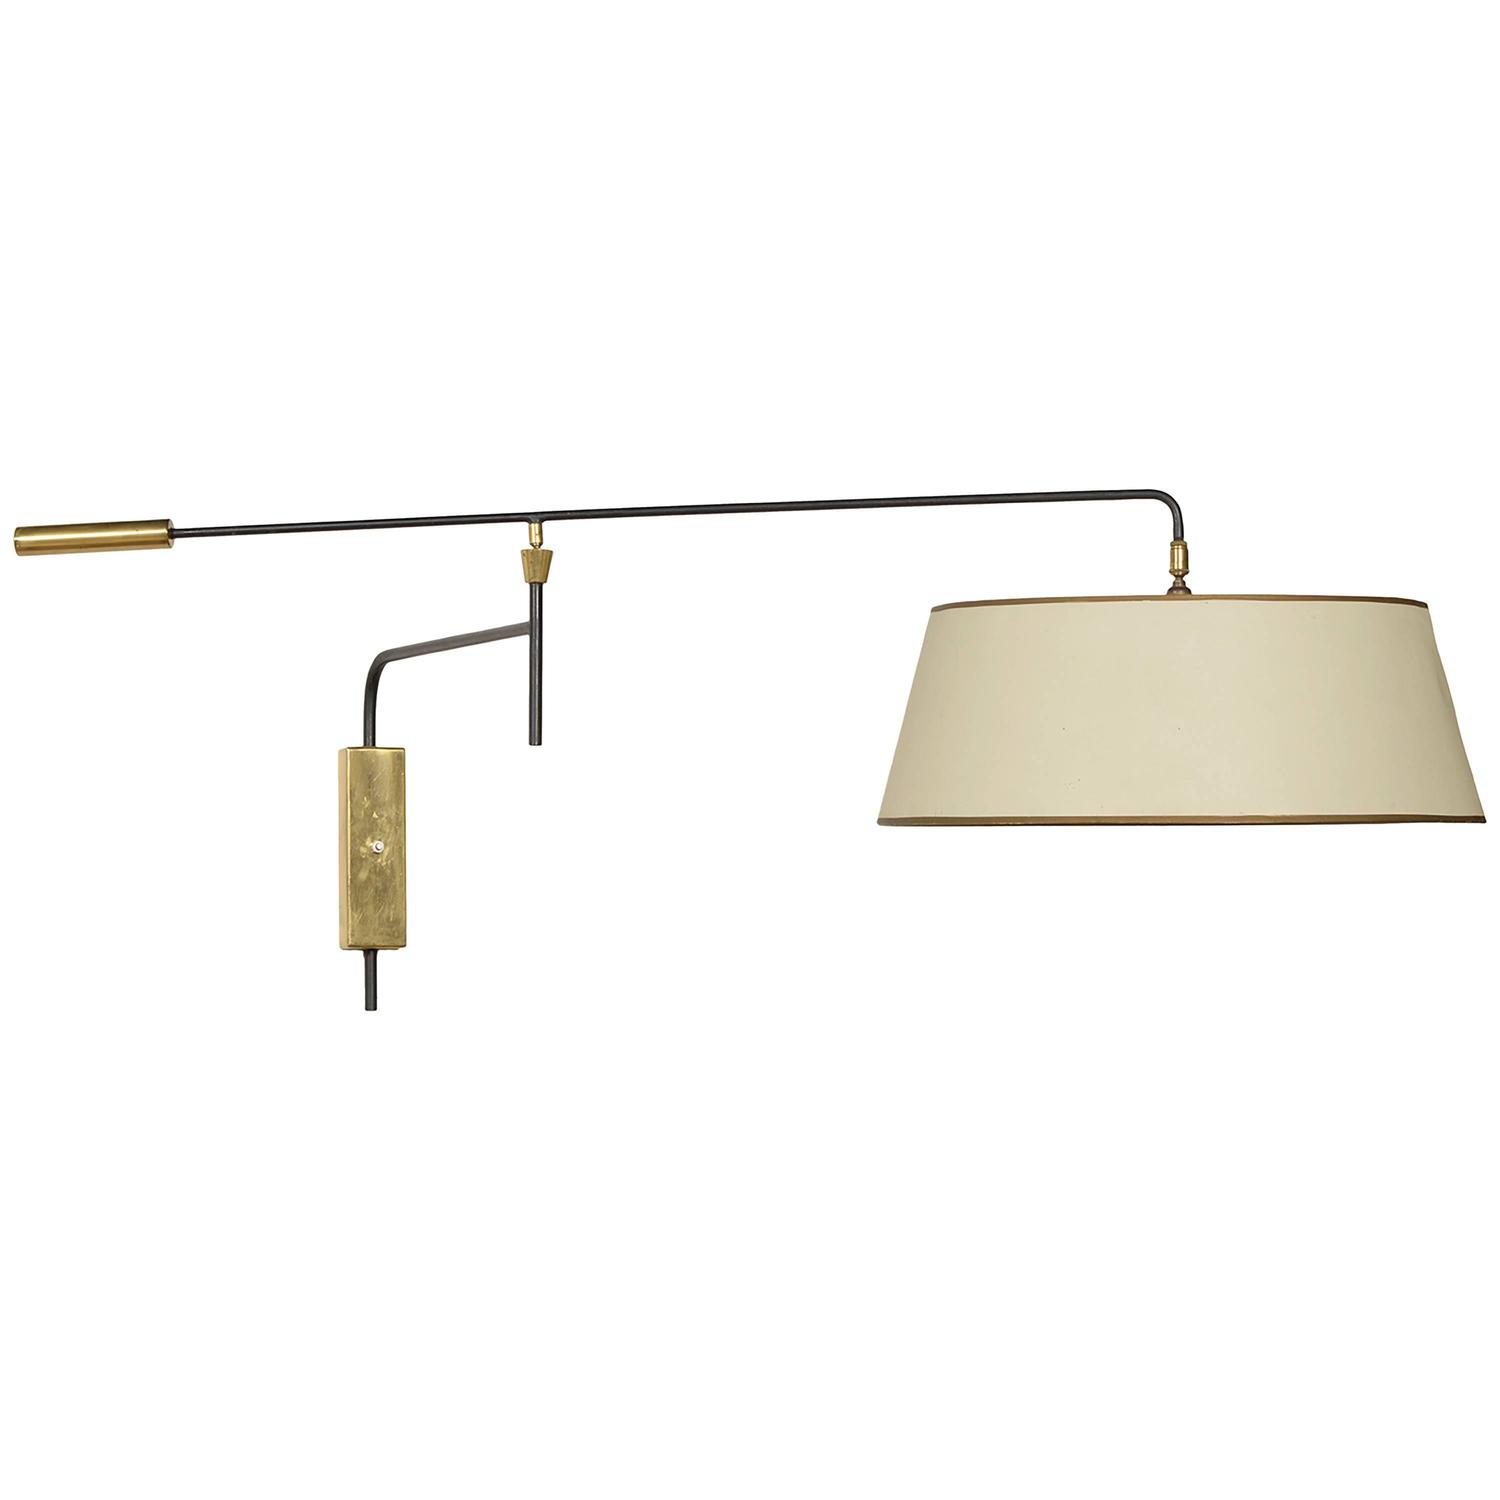 Hanging Wall Lamps Fixture : Arlus 1950s Hanging Wall Fixture For Sale at 1stdibs